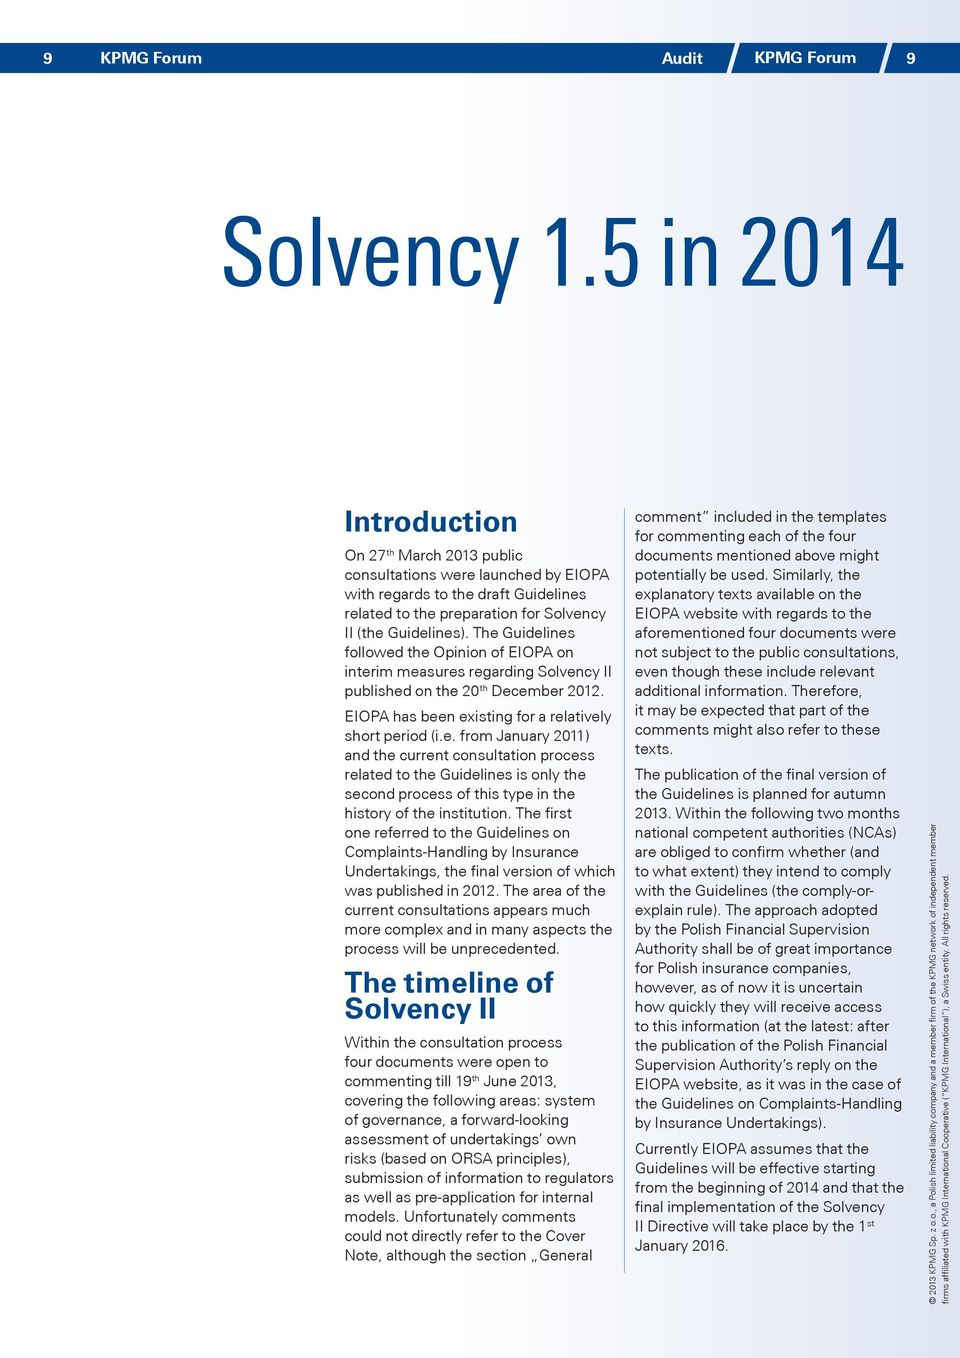 The Guidelines followed the Opinion of EIOPA on interim measures regarding Solvency II published on the 20 th December 2012. EIOPA has been existing for a relatively short period (i.e. from January 2011) and the current consultation process related to the Guidelines is only the second process of this type in the history of the institution.